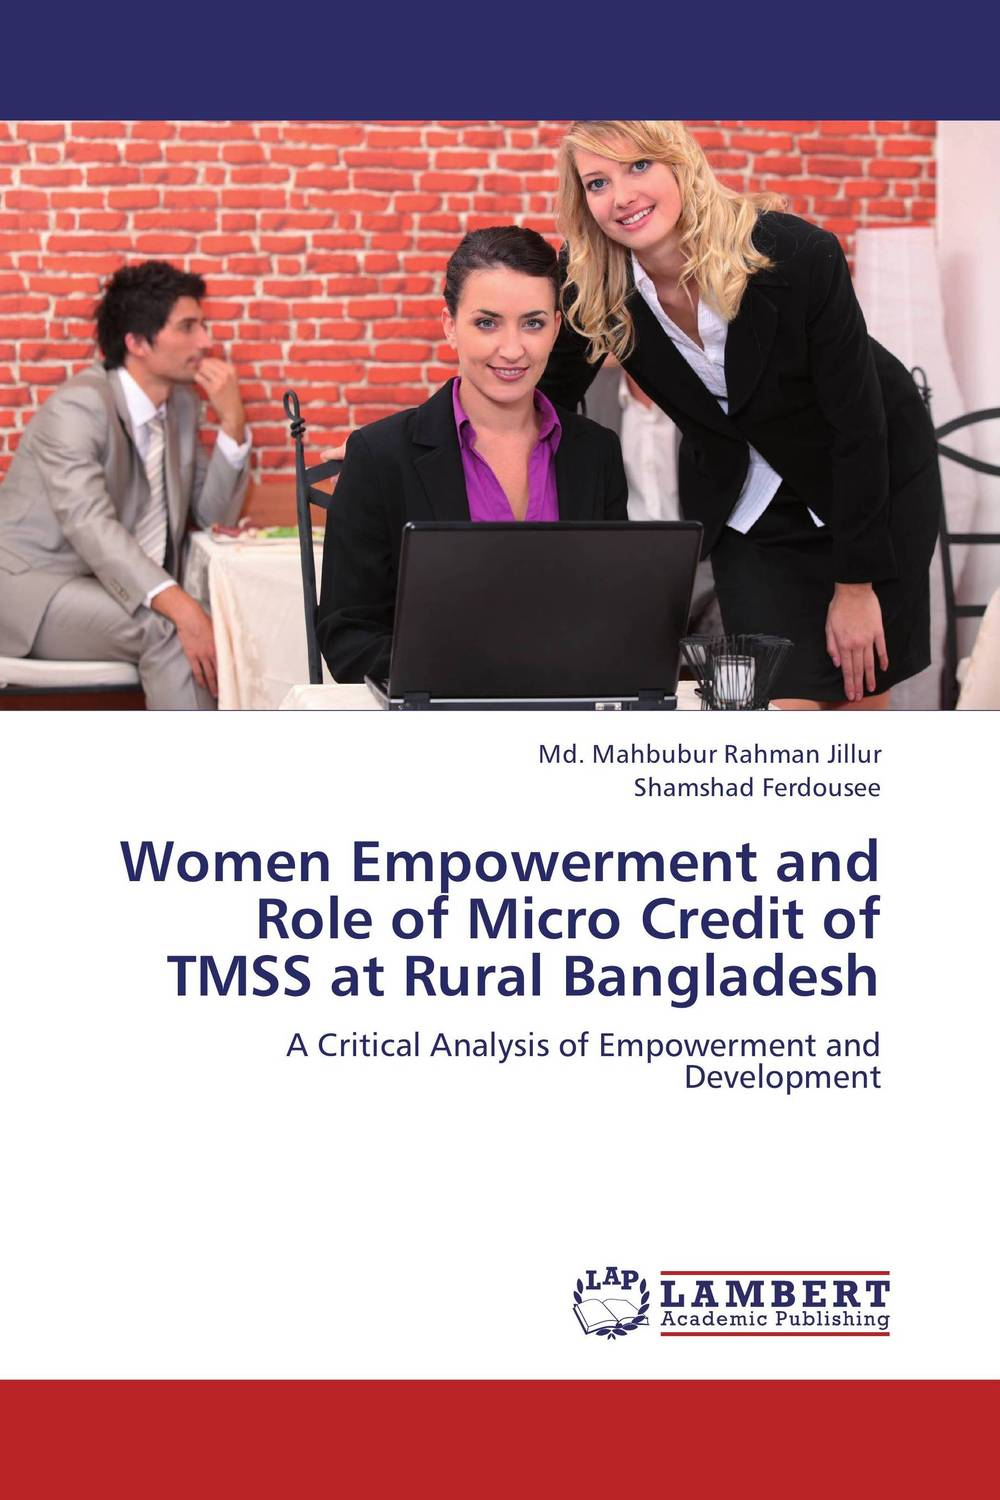 Women Empowerment and Role of Micro Credit of TMSS at Rural Bangladesh economic empowerment of women and family structures